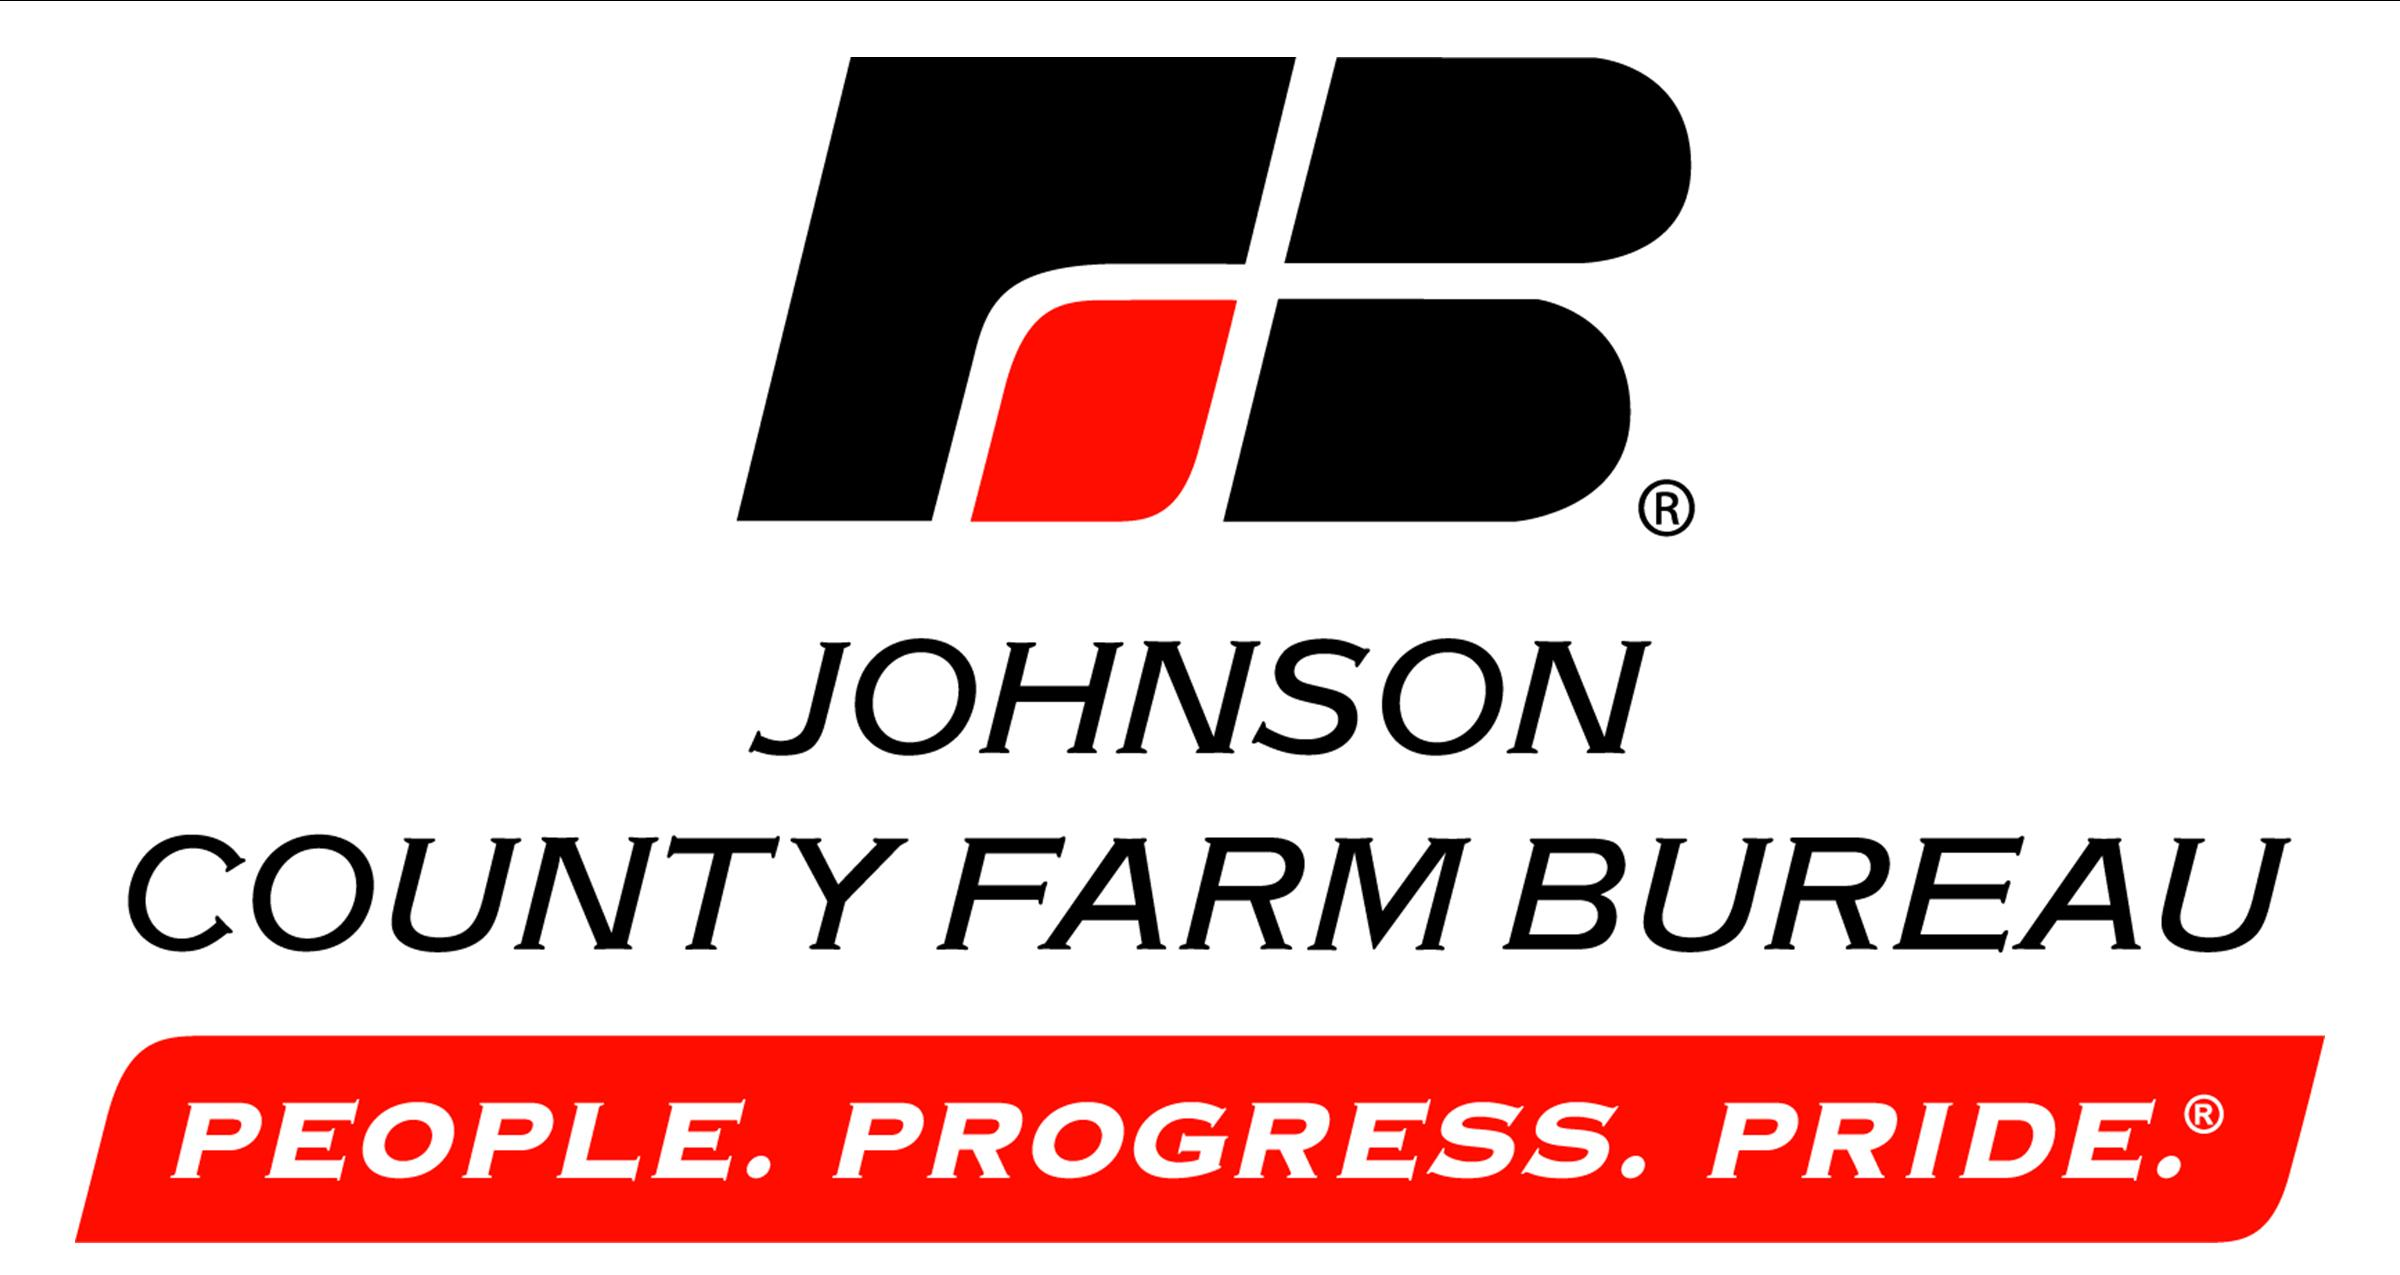 44 Johnson County Farm Bureau TV.jpg